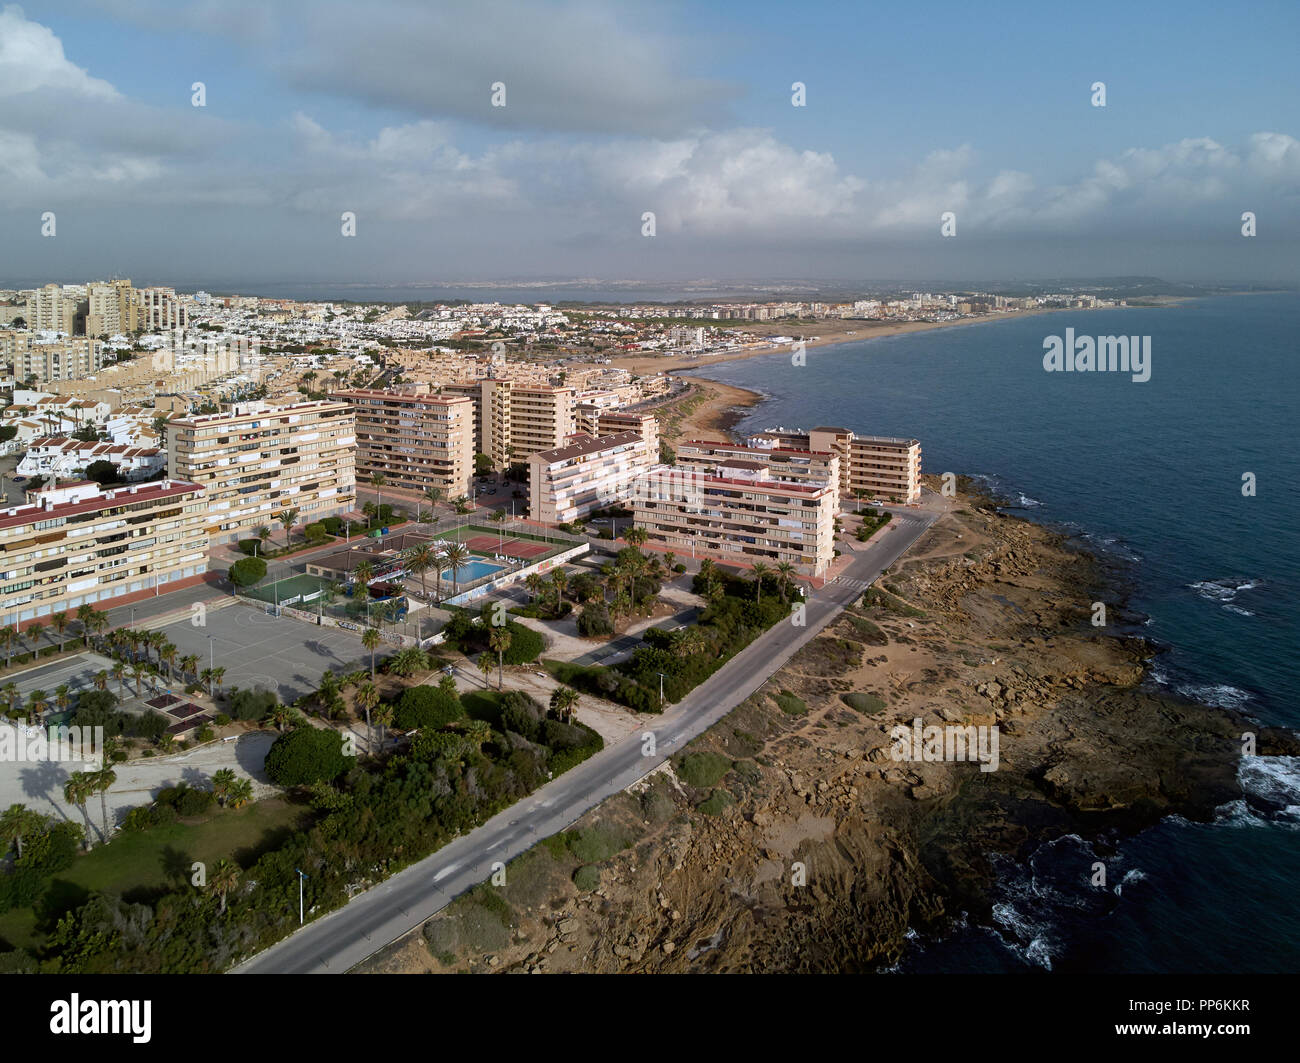 Aerial photography La Mata residential district, Torrevieja townscape. Rocky coast blue Mediterranean Sea top above view. Famous place for travellers  - Stock Image